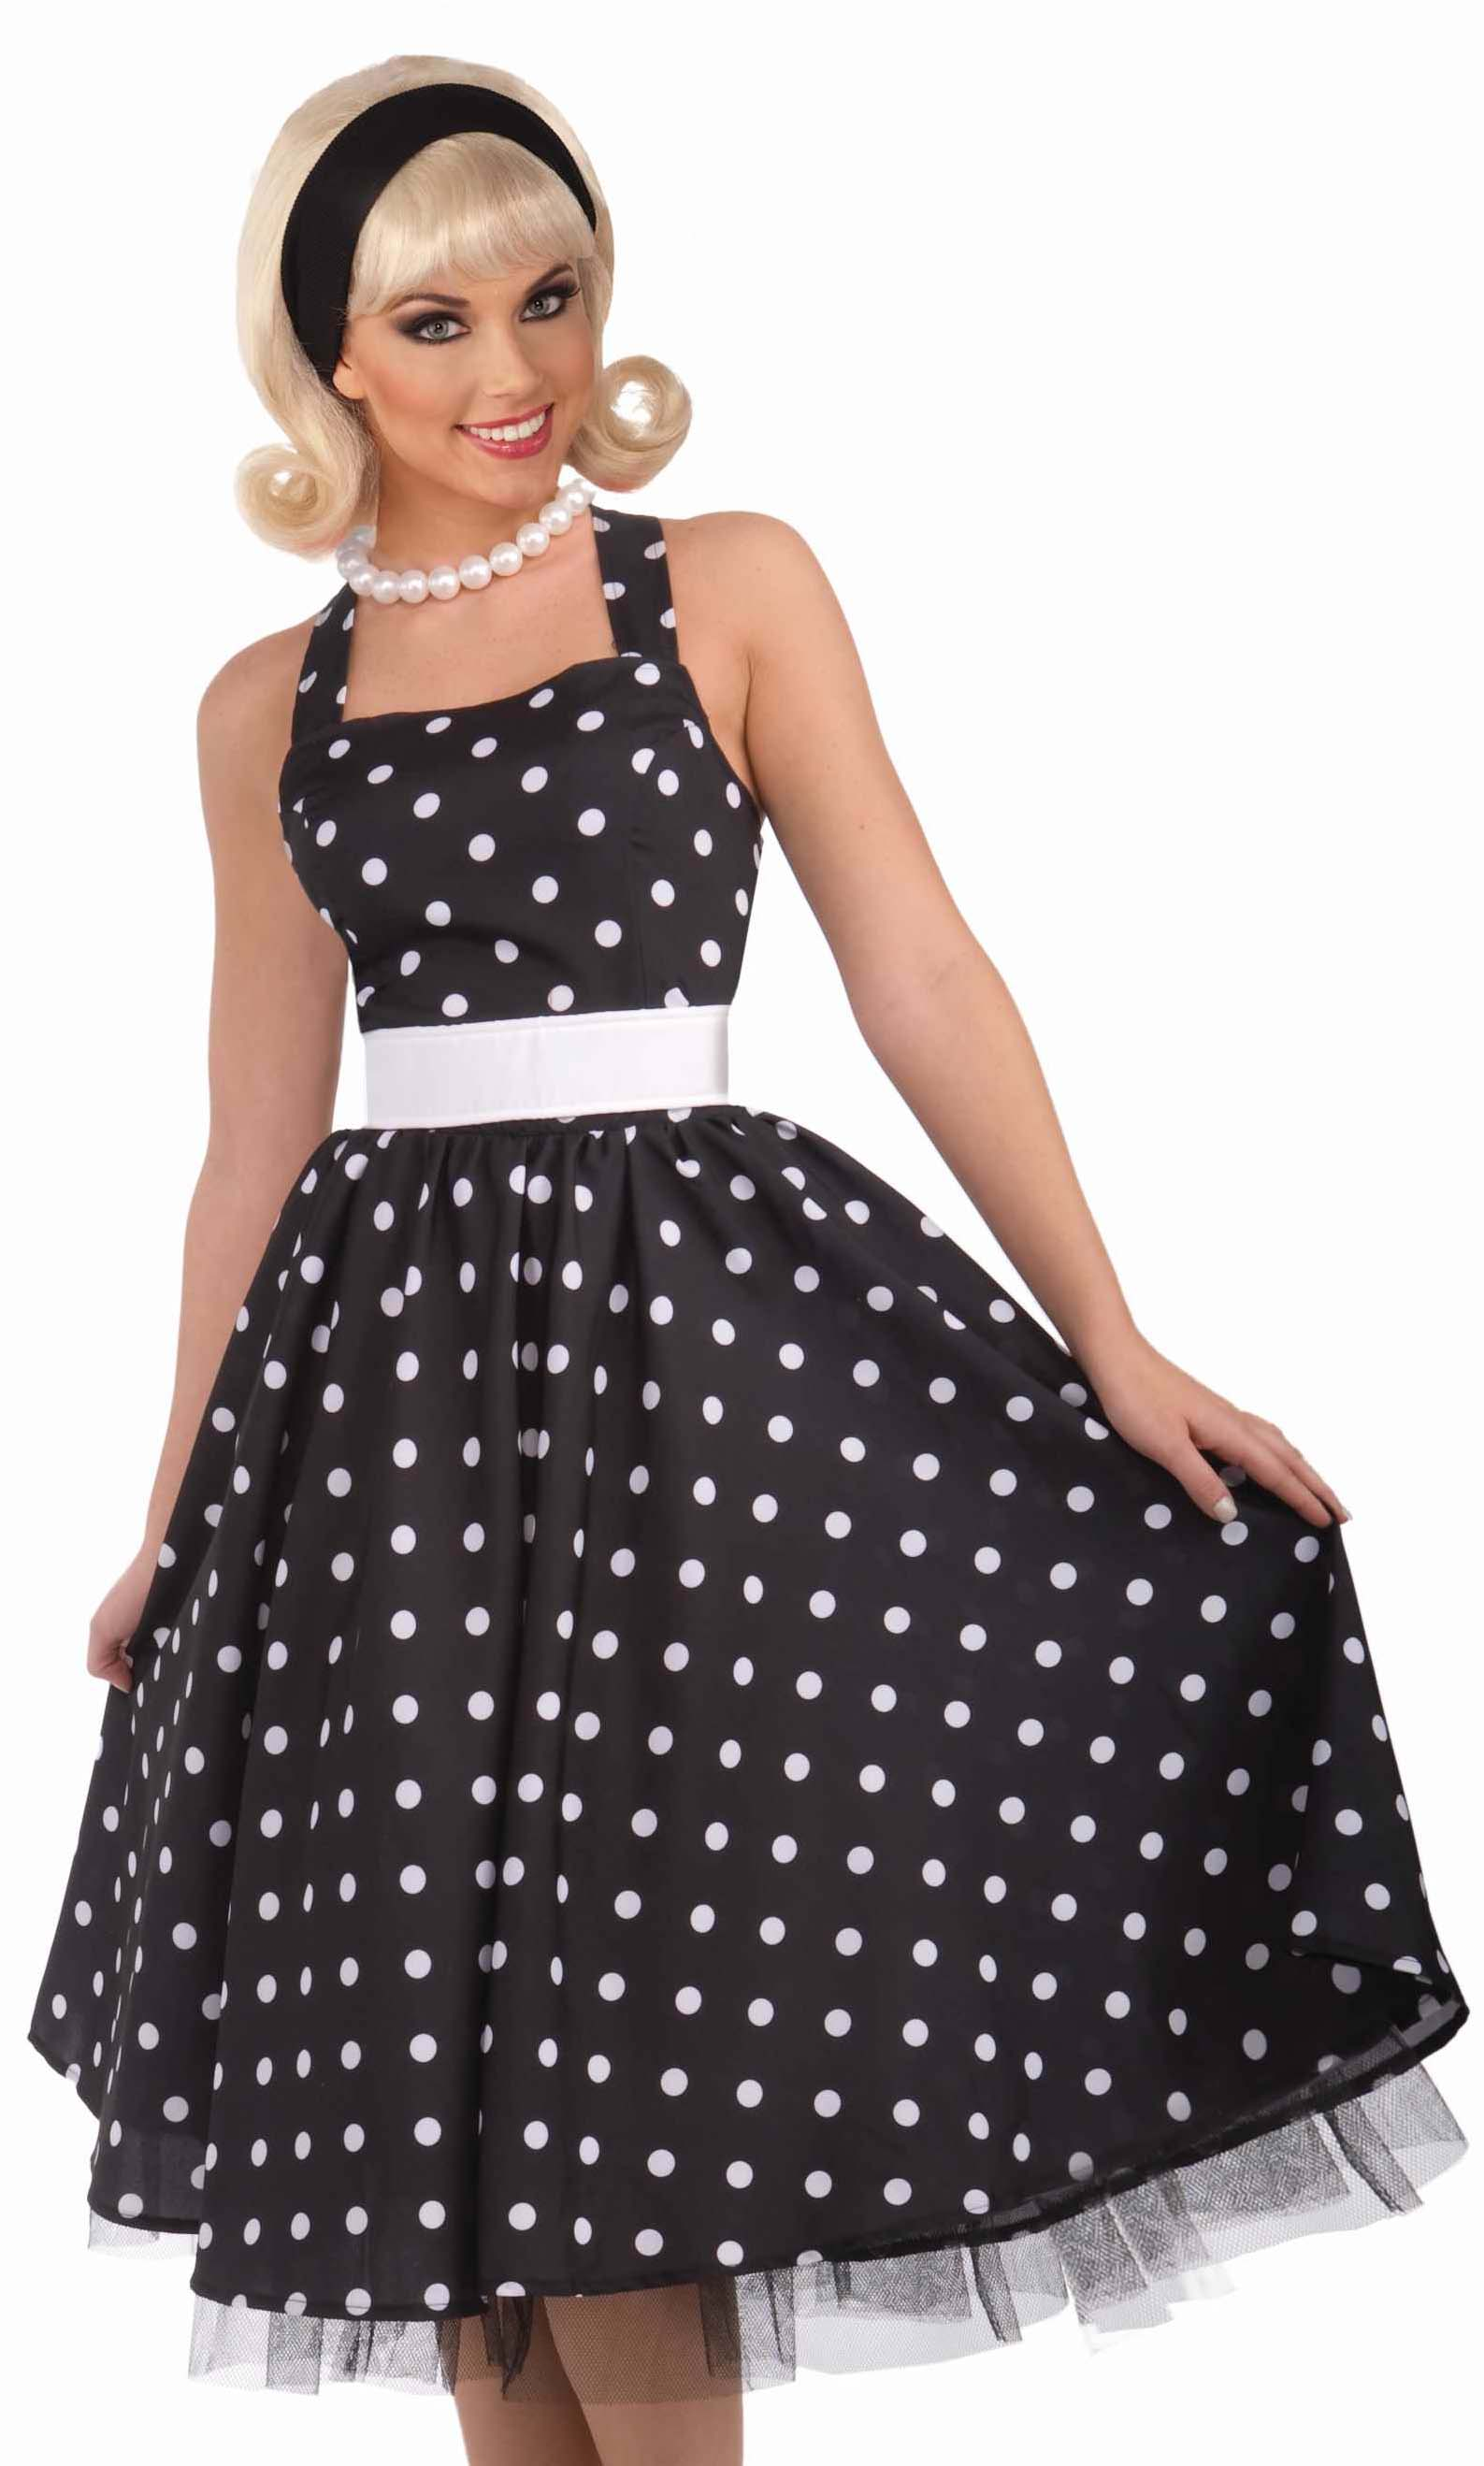 Sexy womens retro 50s housewife dress halloween costume ebay for Classic 50s housewife